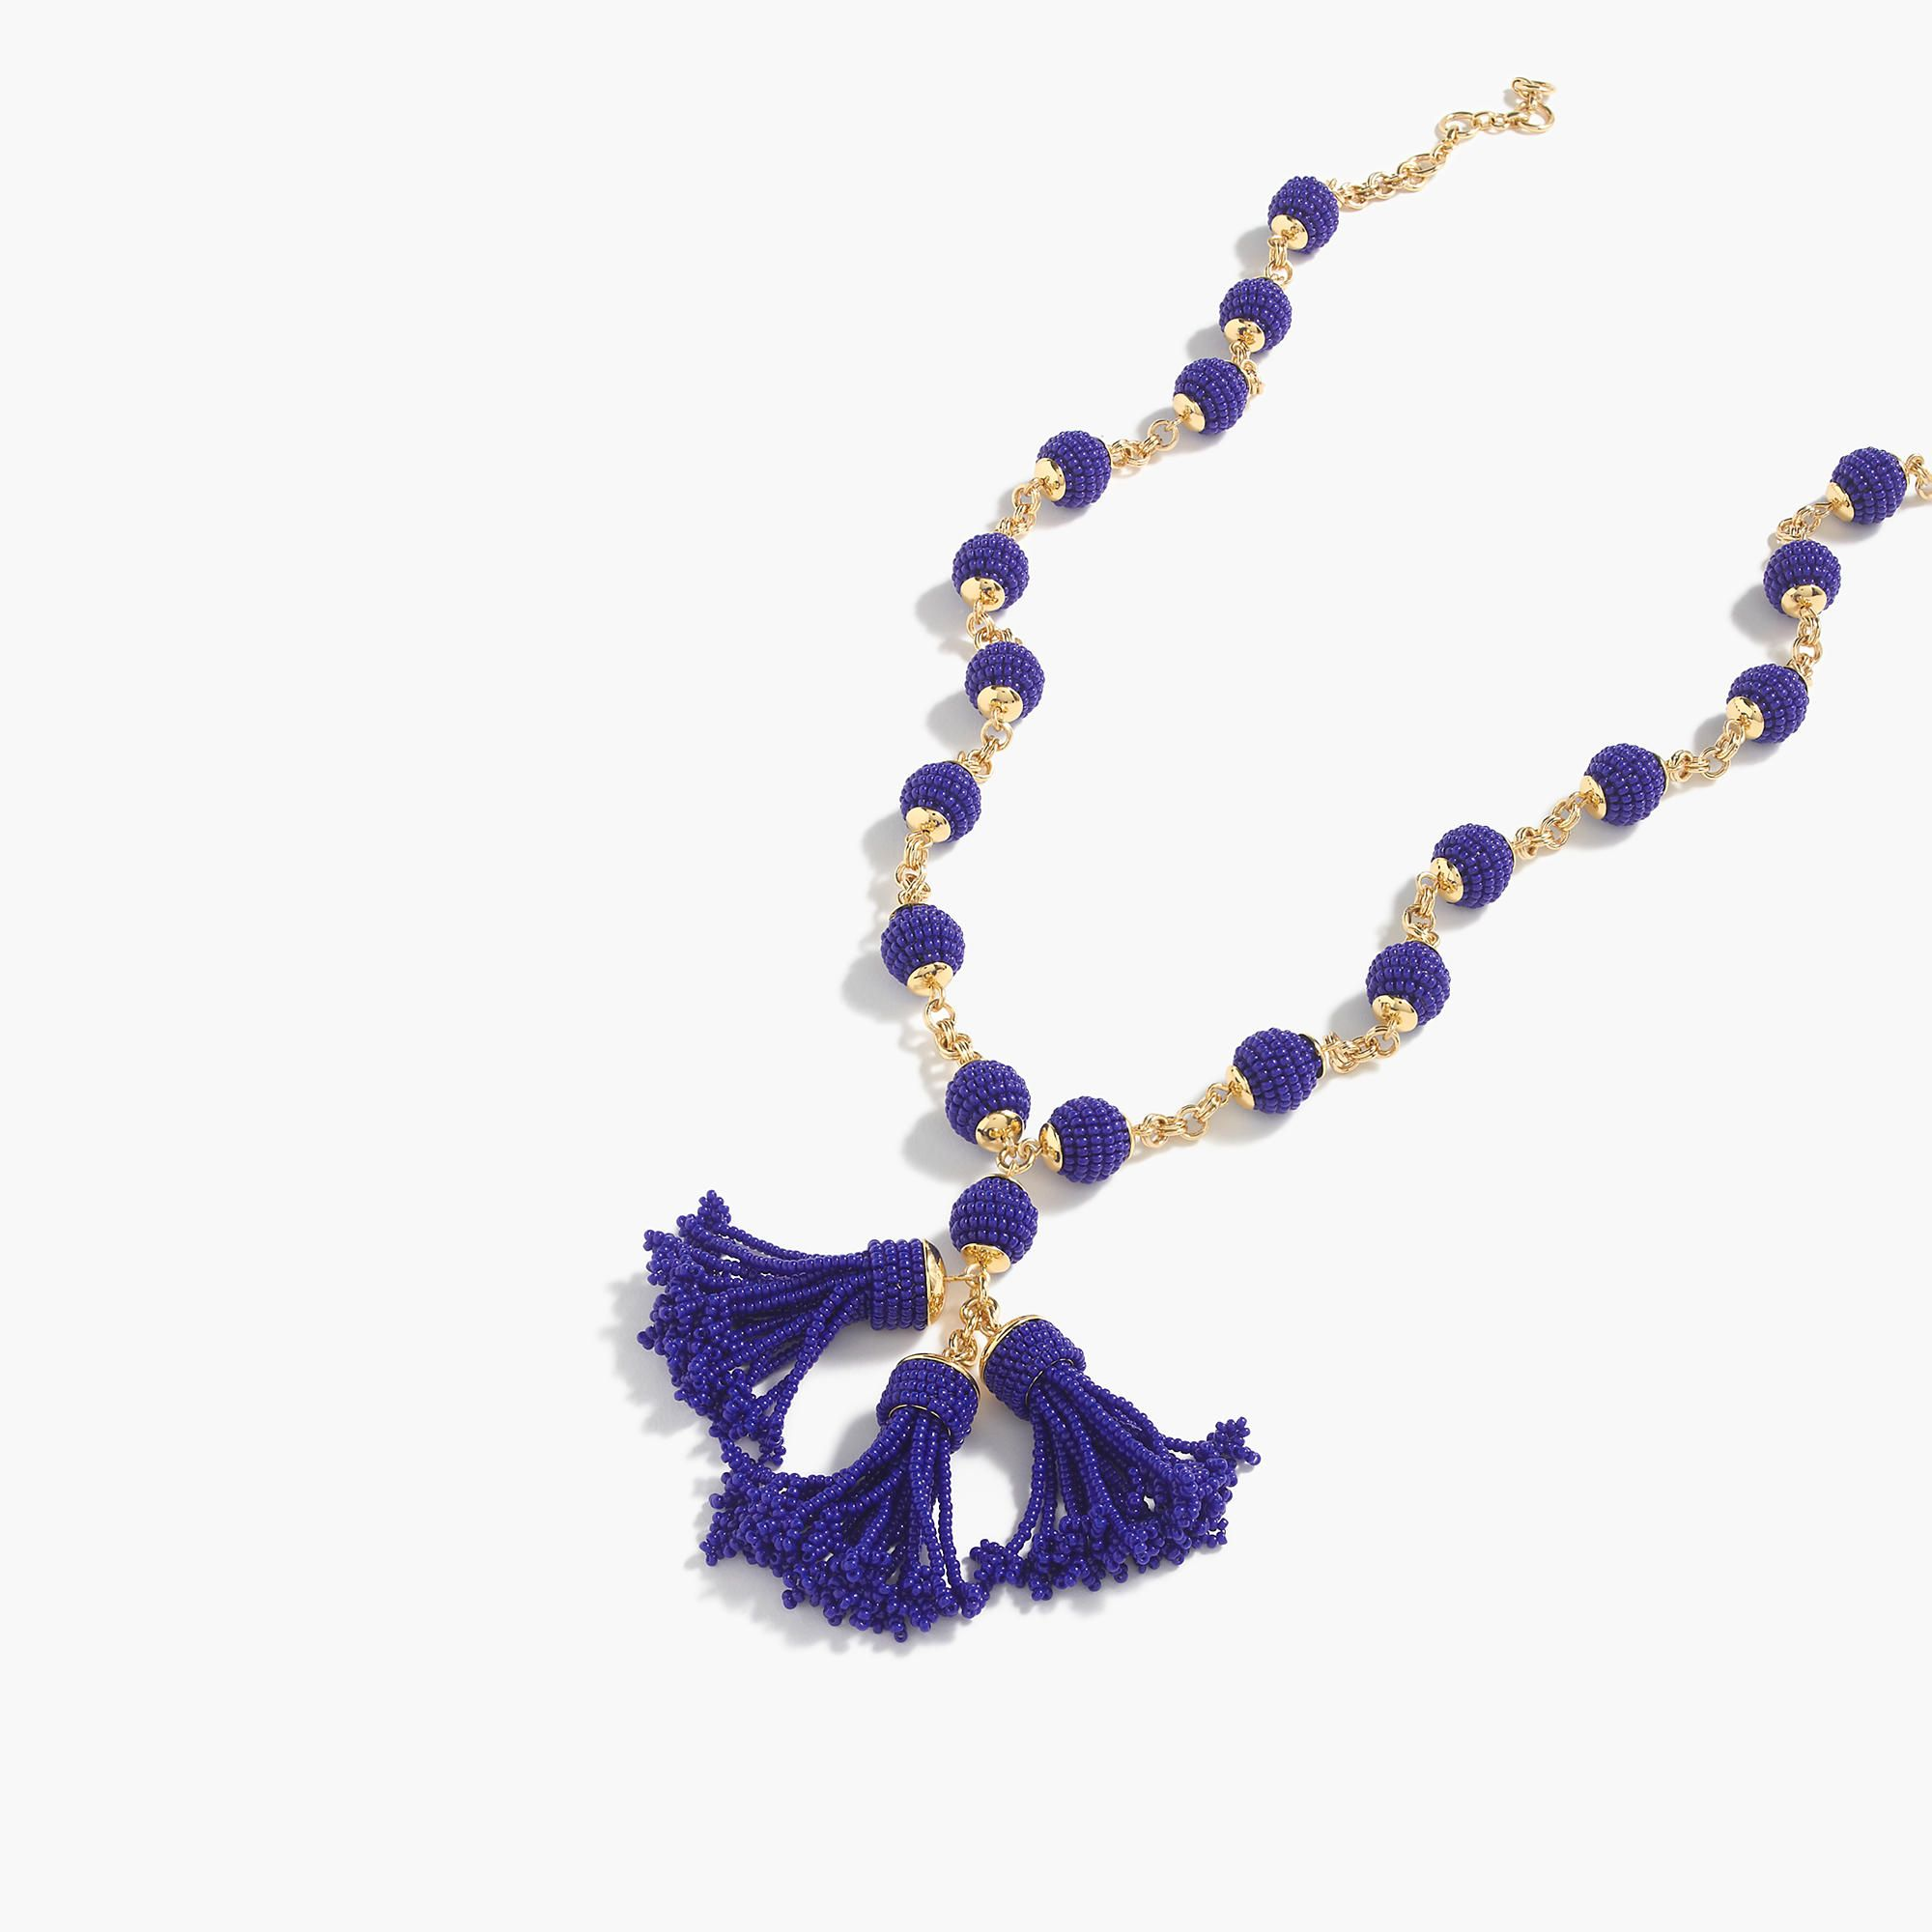 Shop the Beaded Tassel Pendant Necklace at JCrew.com and see the entire selection of Women's Necklaces.